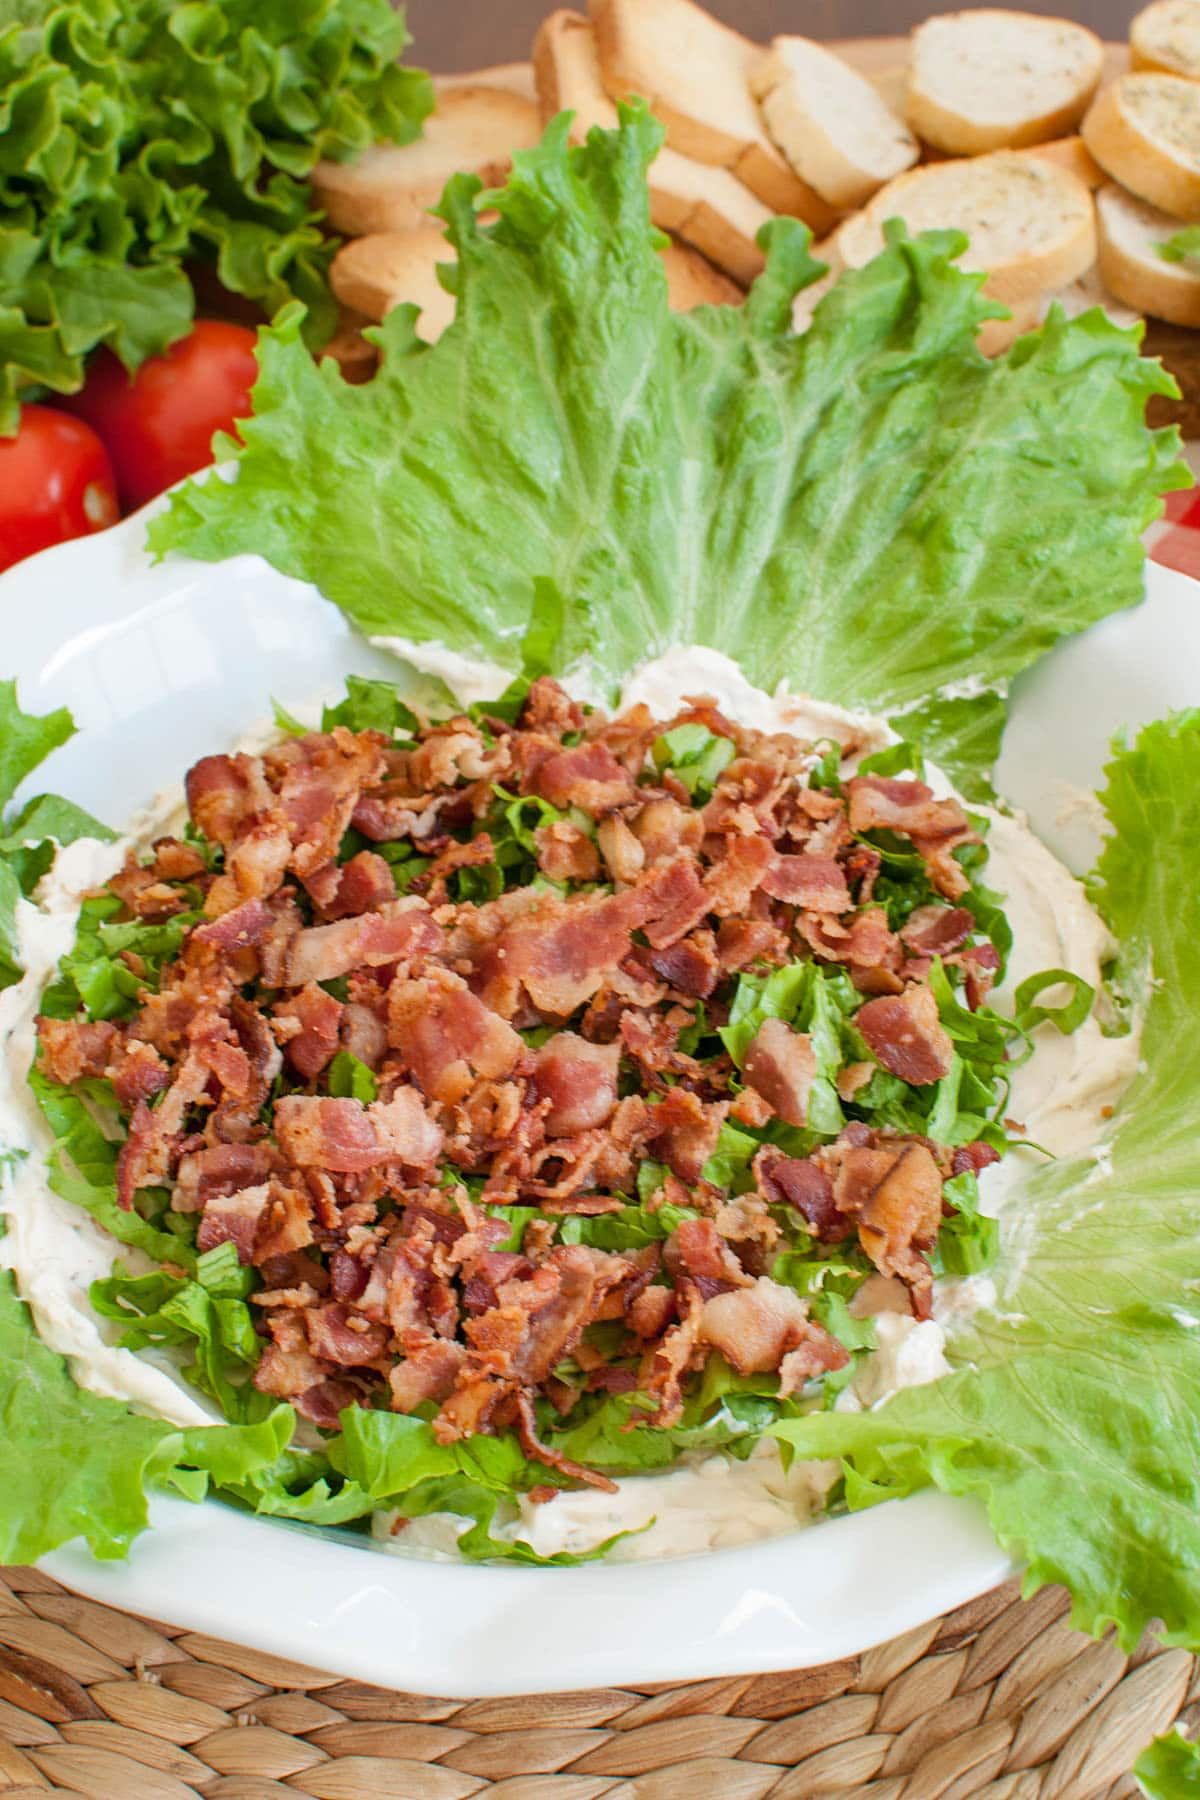 layer of bacon added to dish